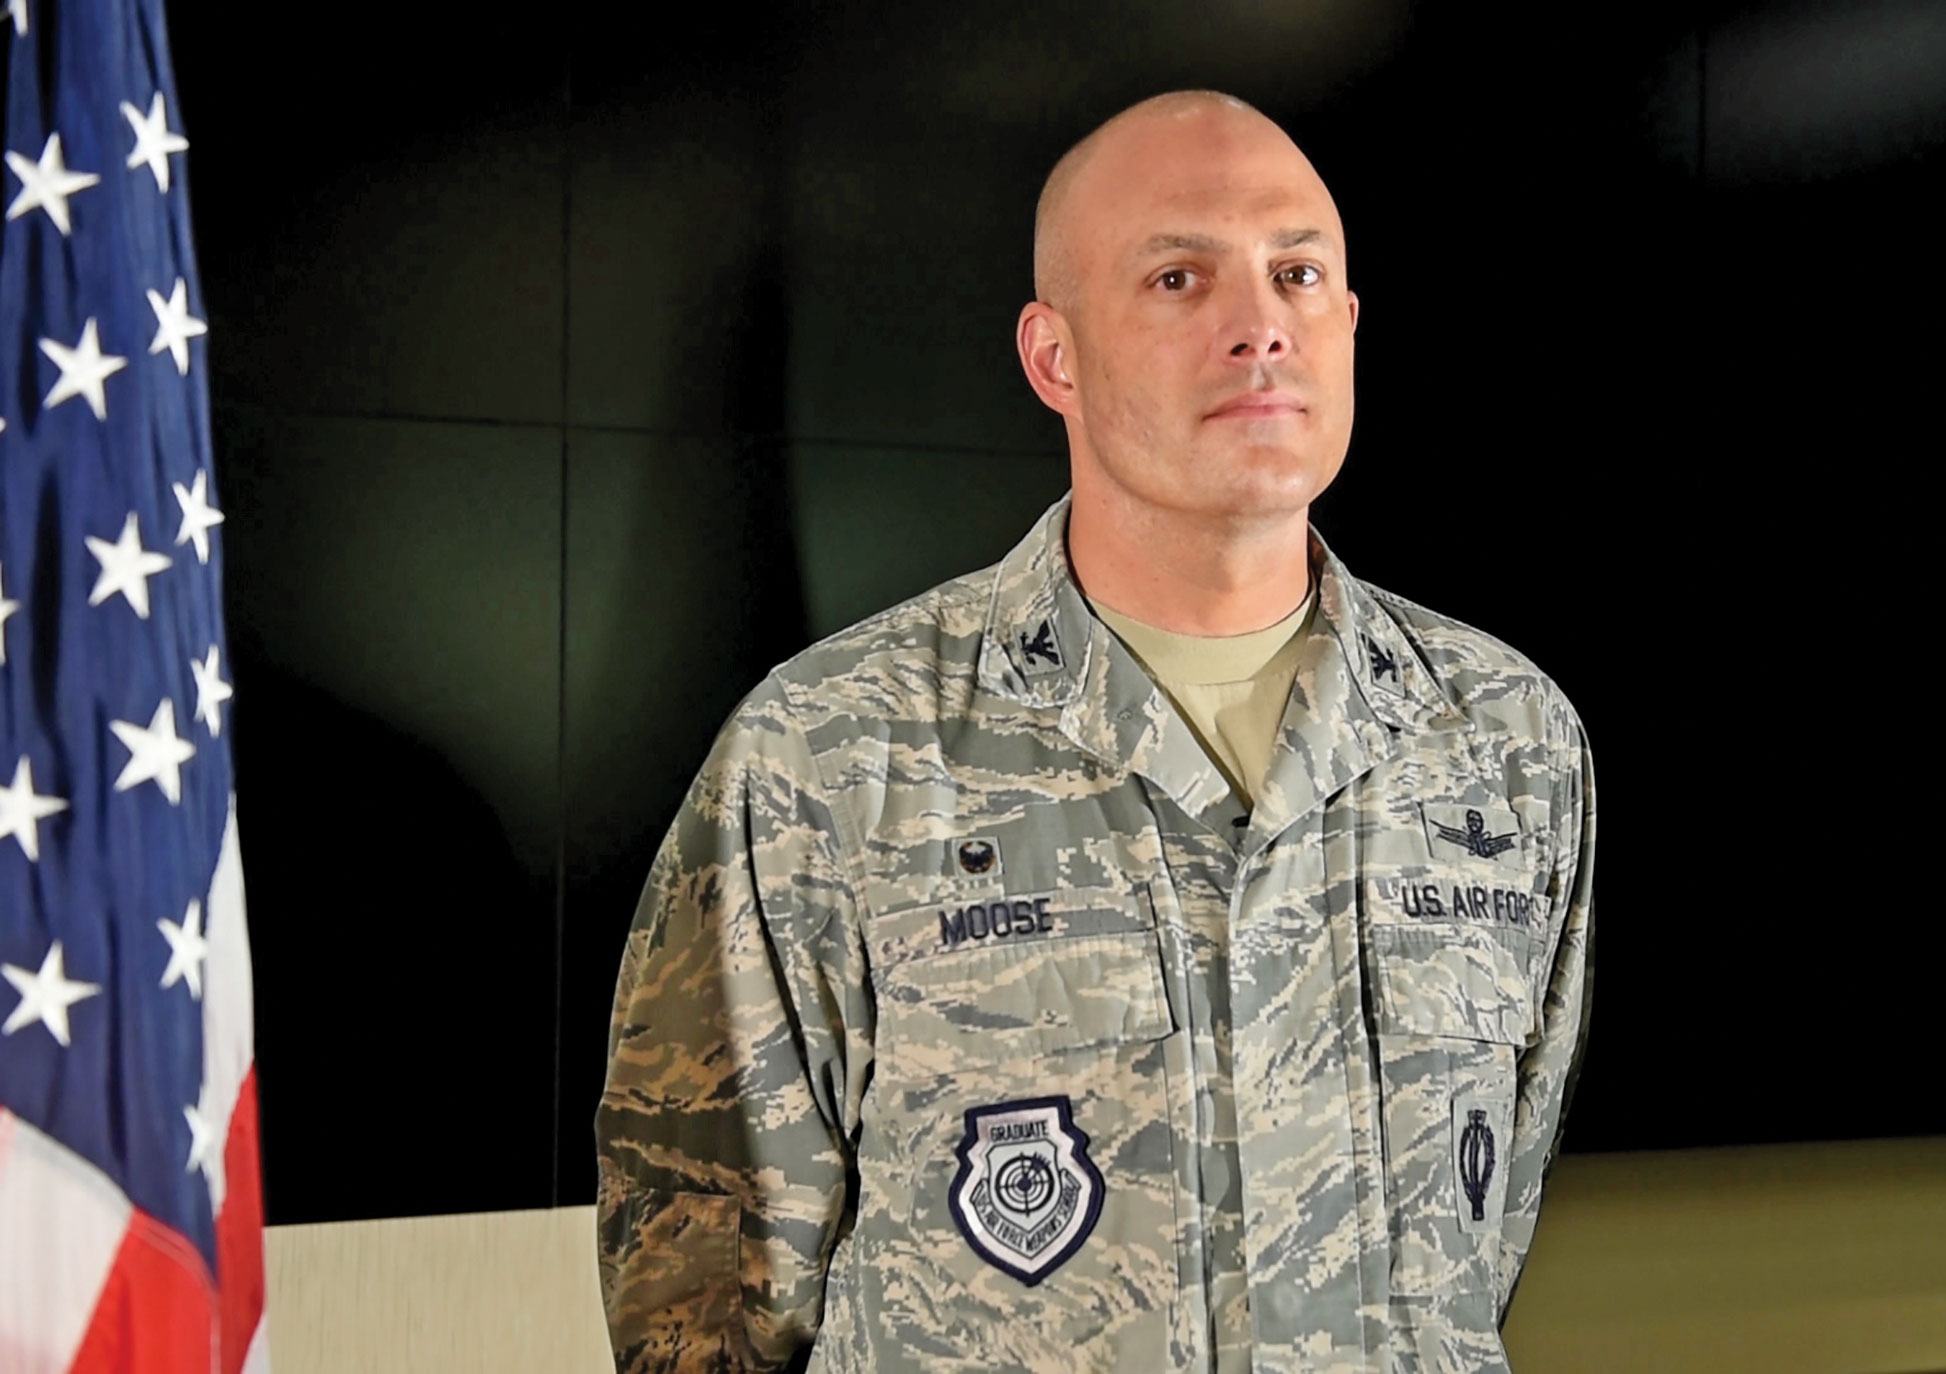 (U.S. Air Force photo by David Meade) Cheyenne Mountain Air Force Station, Colo. —Col. Robert Moose, 721st Mission Support Group commander, prepares for a media visit at Cheyenne Mountain Air Force Station, Colorado, Sept. 12, 2017. Moose took command of 721st MSG June, 2017.